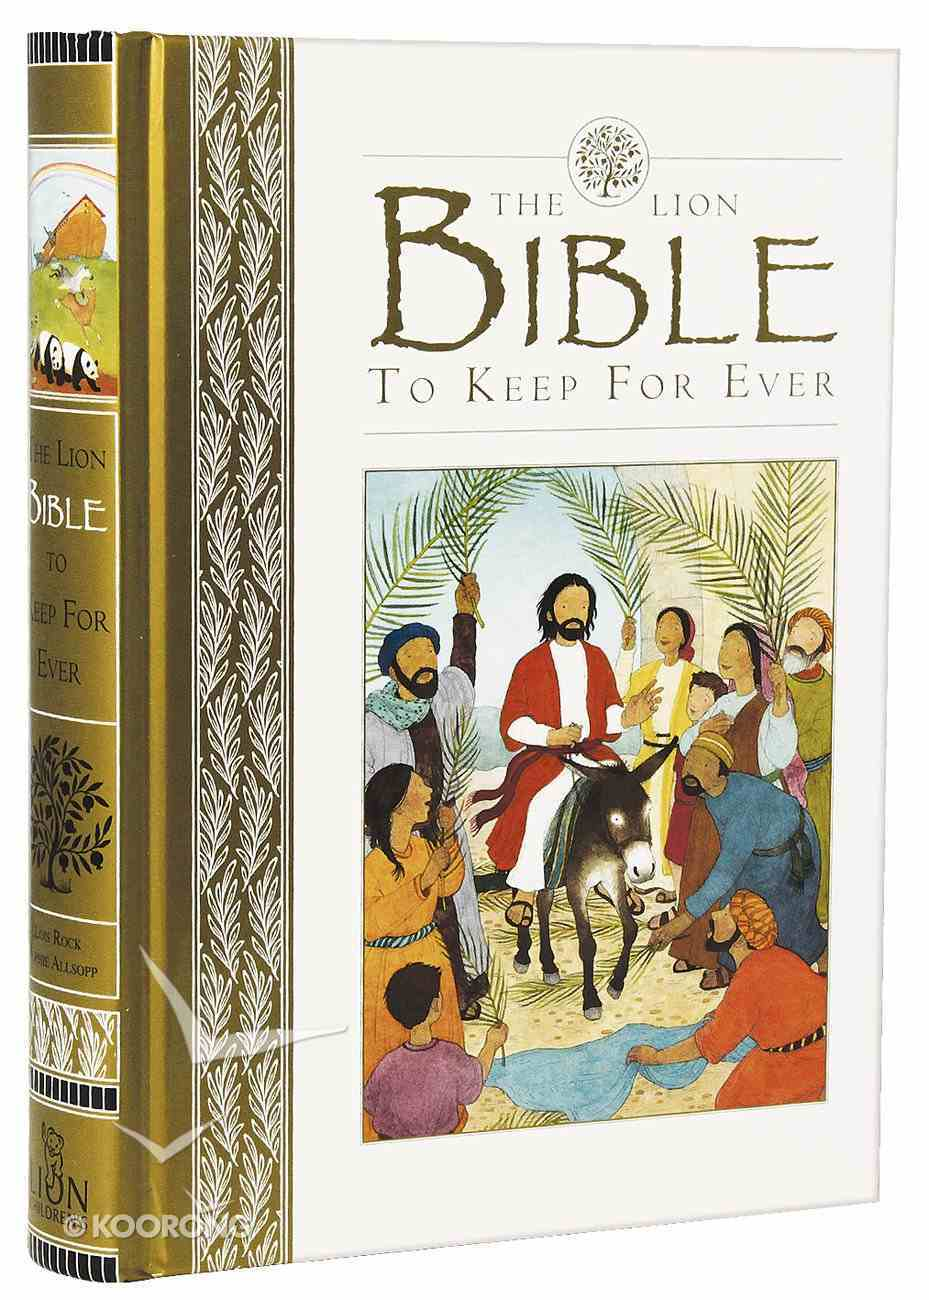 The Lion Bible to Keep For Ever Hardback